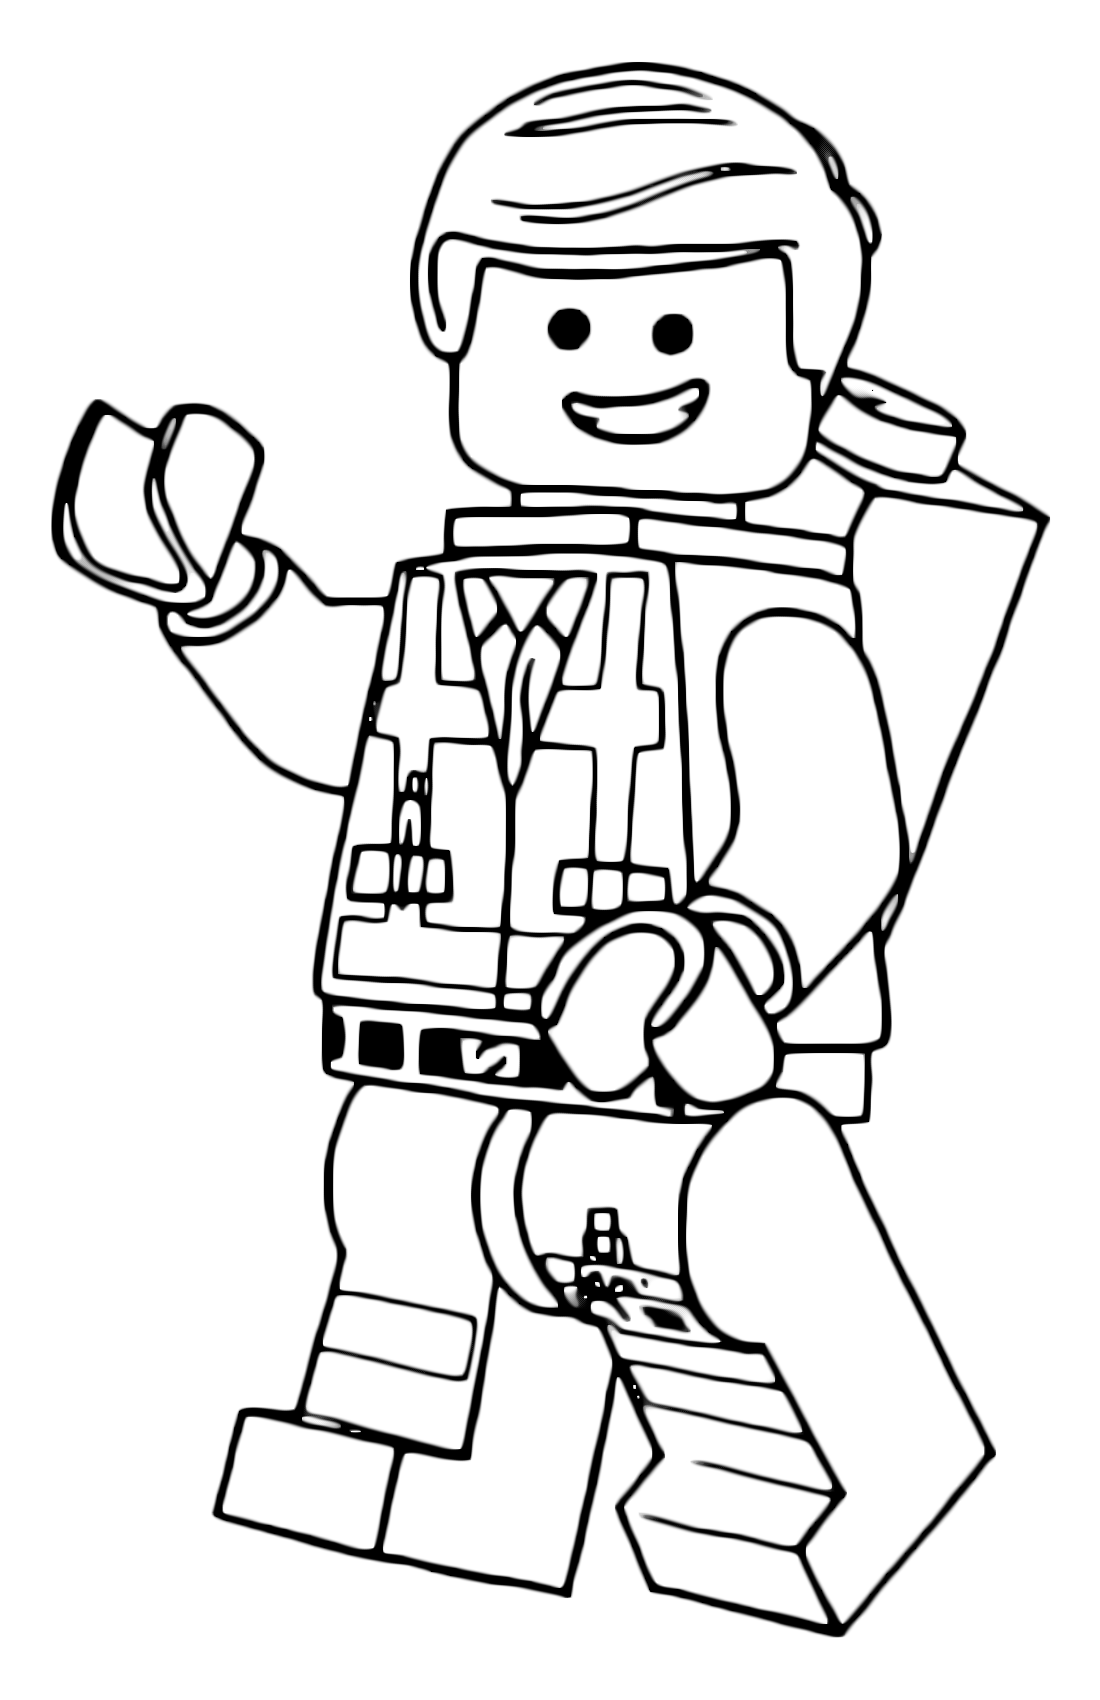 lego emmet coloring page lego movie coloring pages best coloring pages for kids lego page emmet coloring